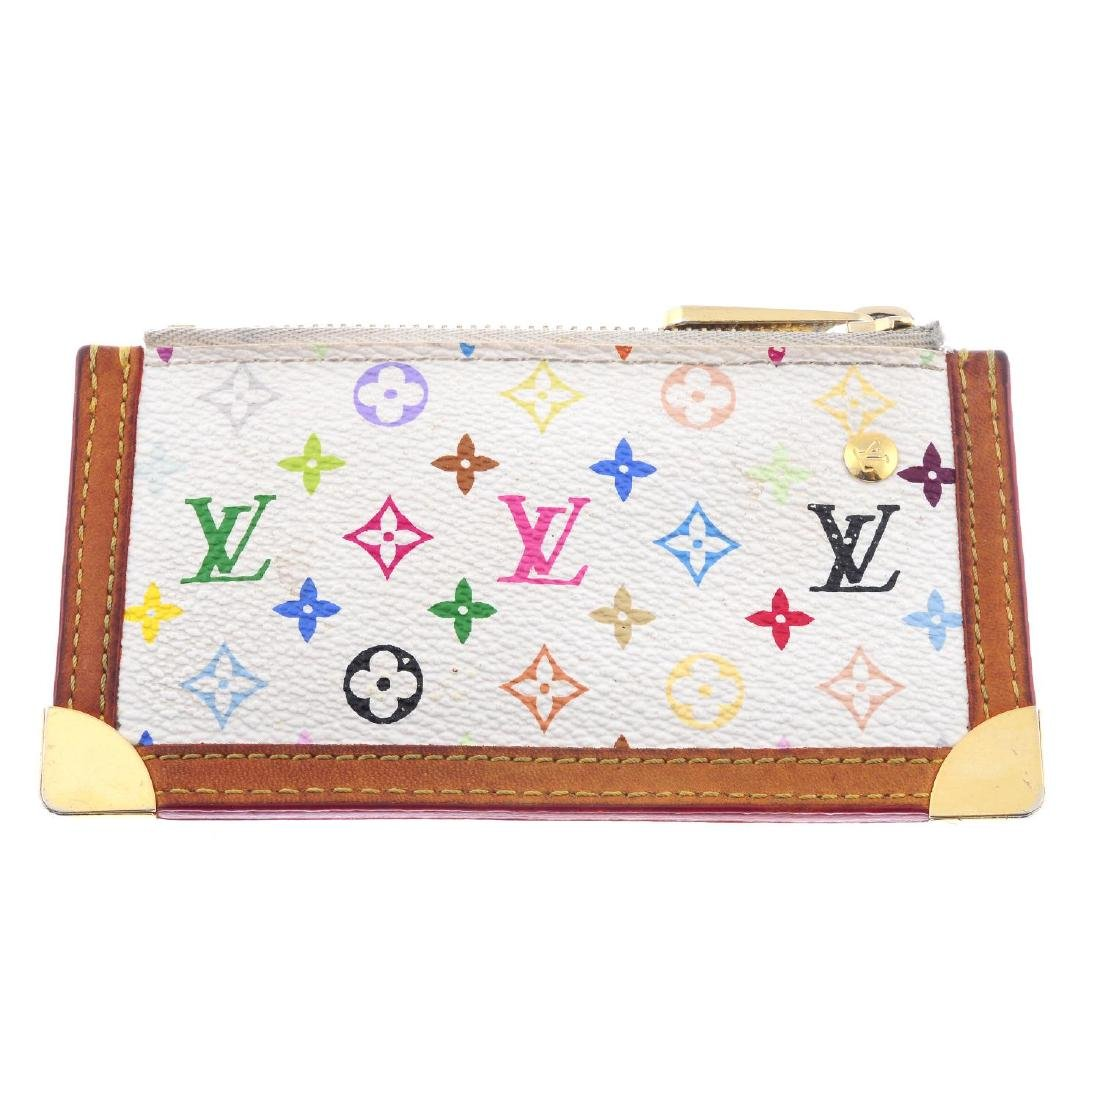 LOUIS VUITTON - a Multicolor Monogram Pochette Cles